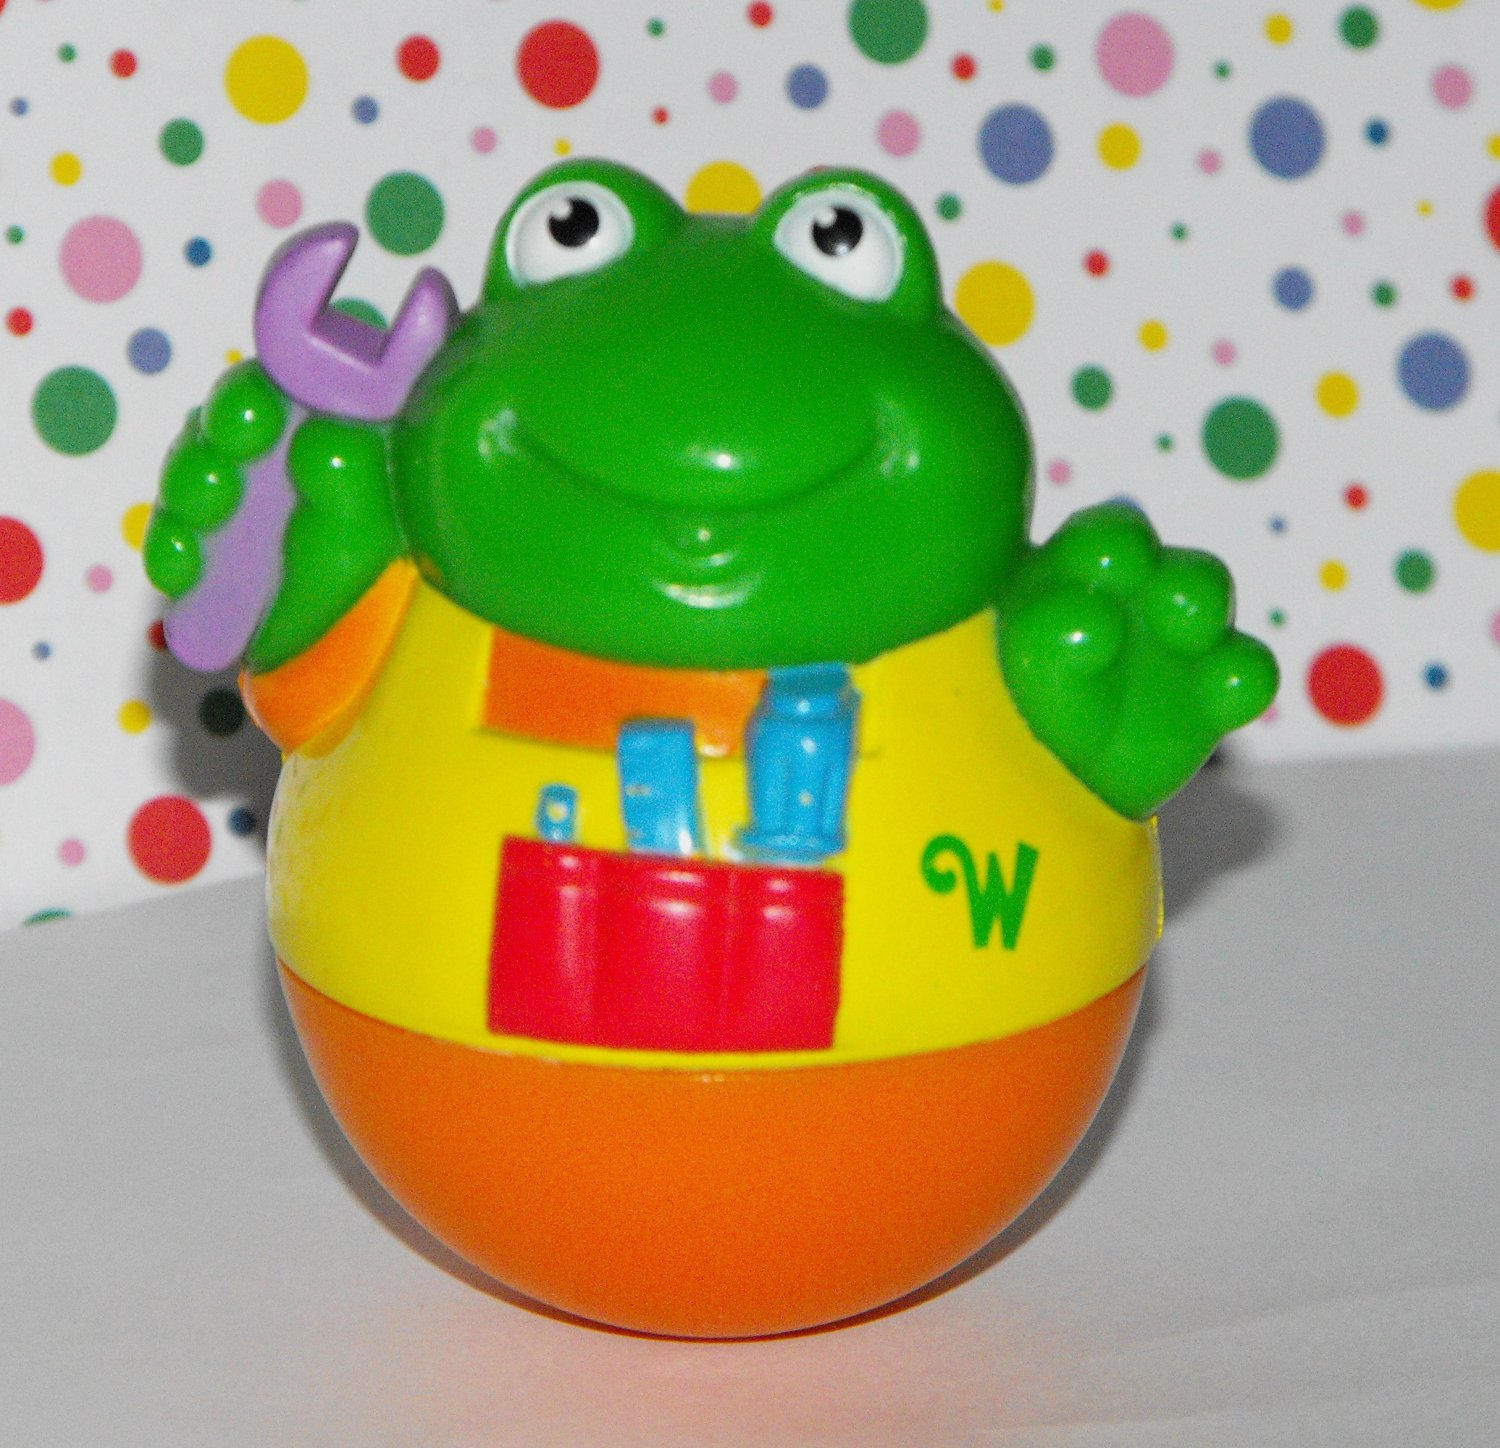 *2/15*SOLD~Playskool Weebles Frog with Overalls and Wrench Tools